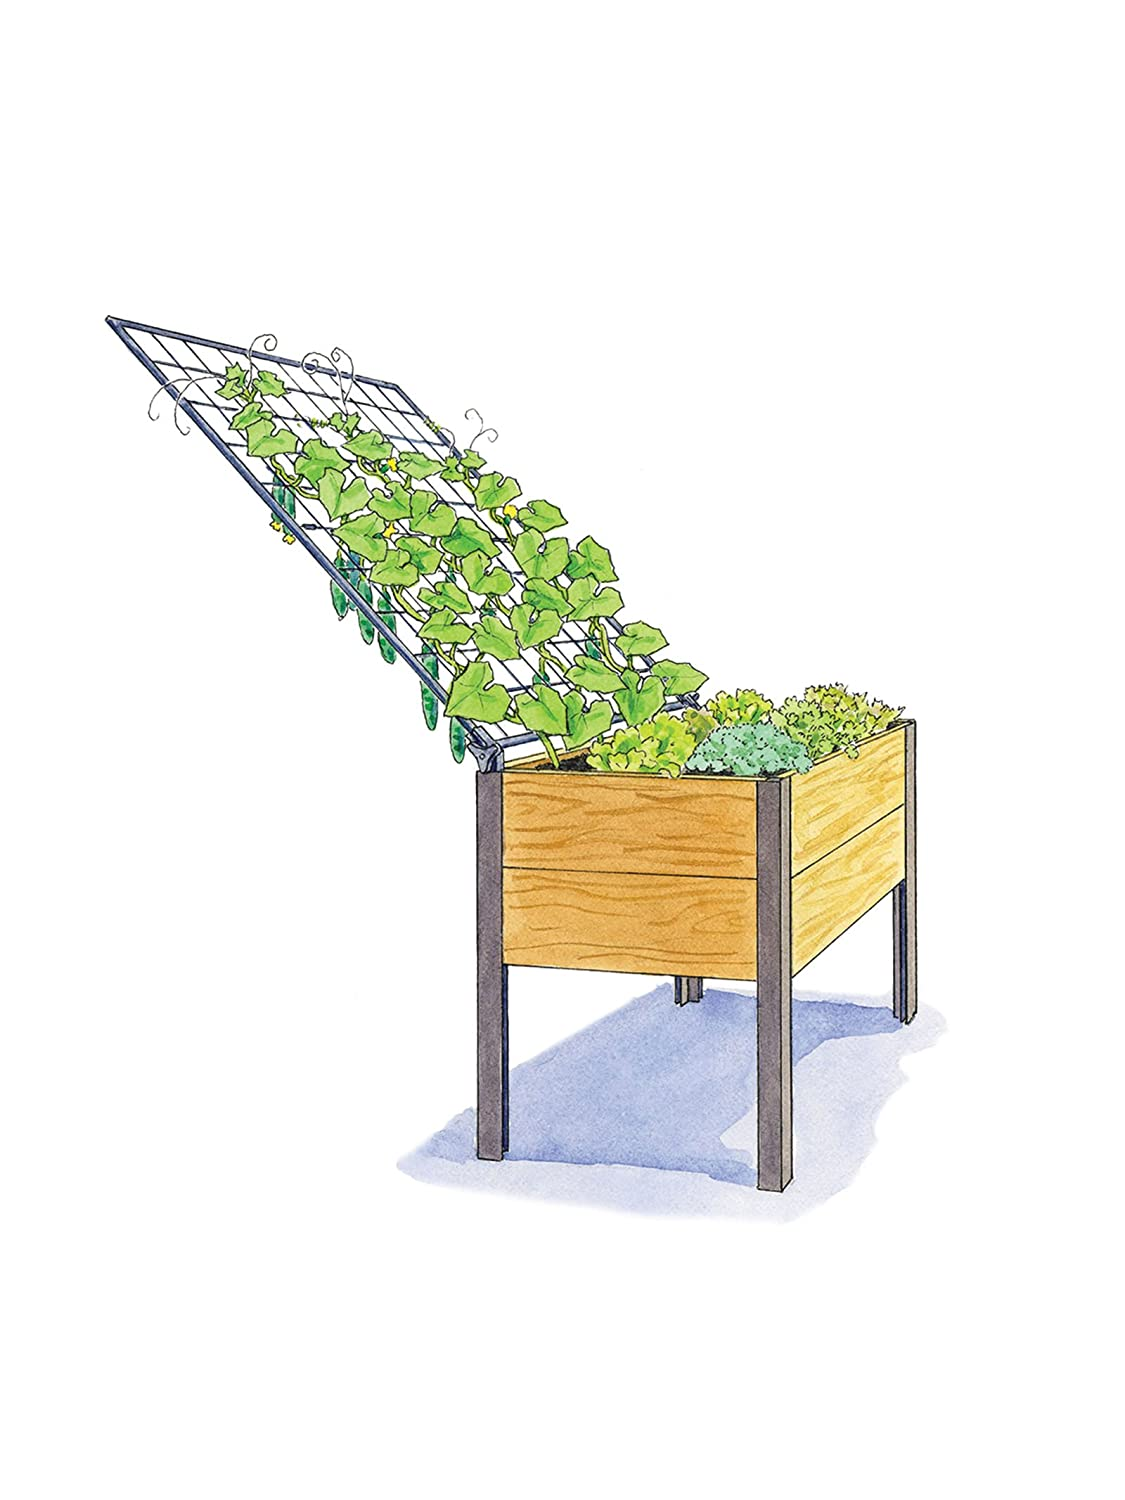 Amazon.com: space-maker Trellis orientables, 48217;: Jardín ...